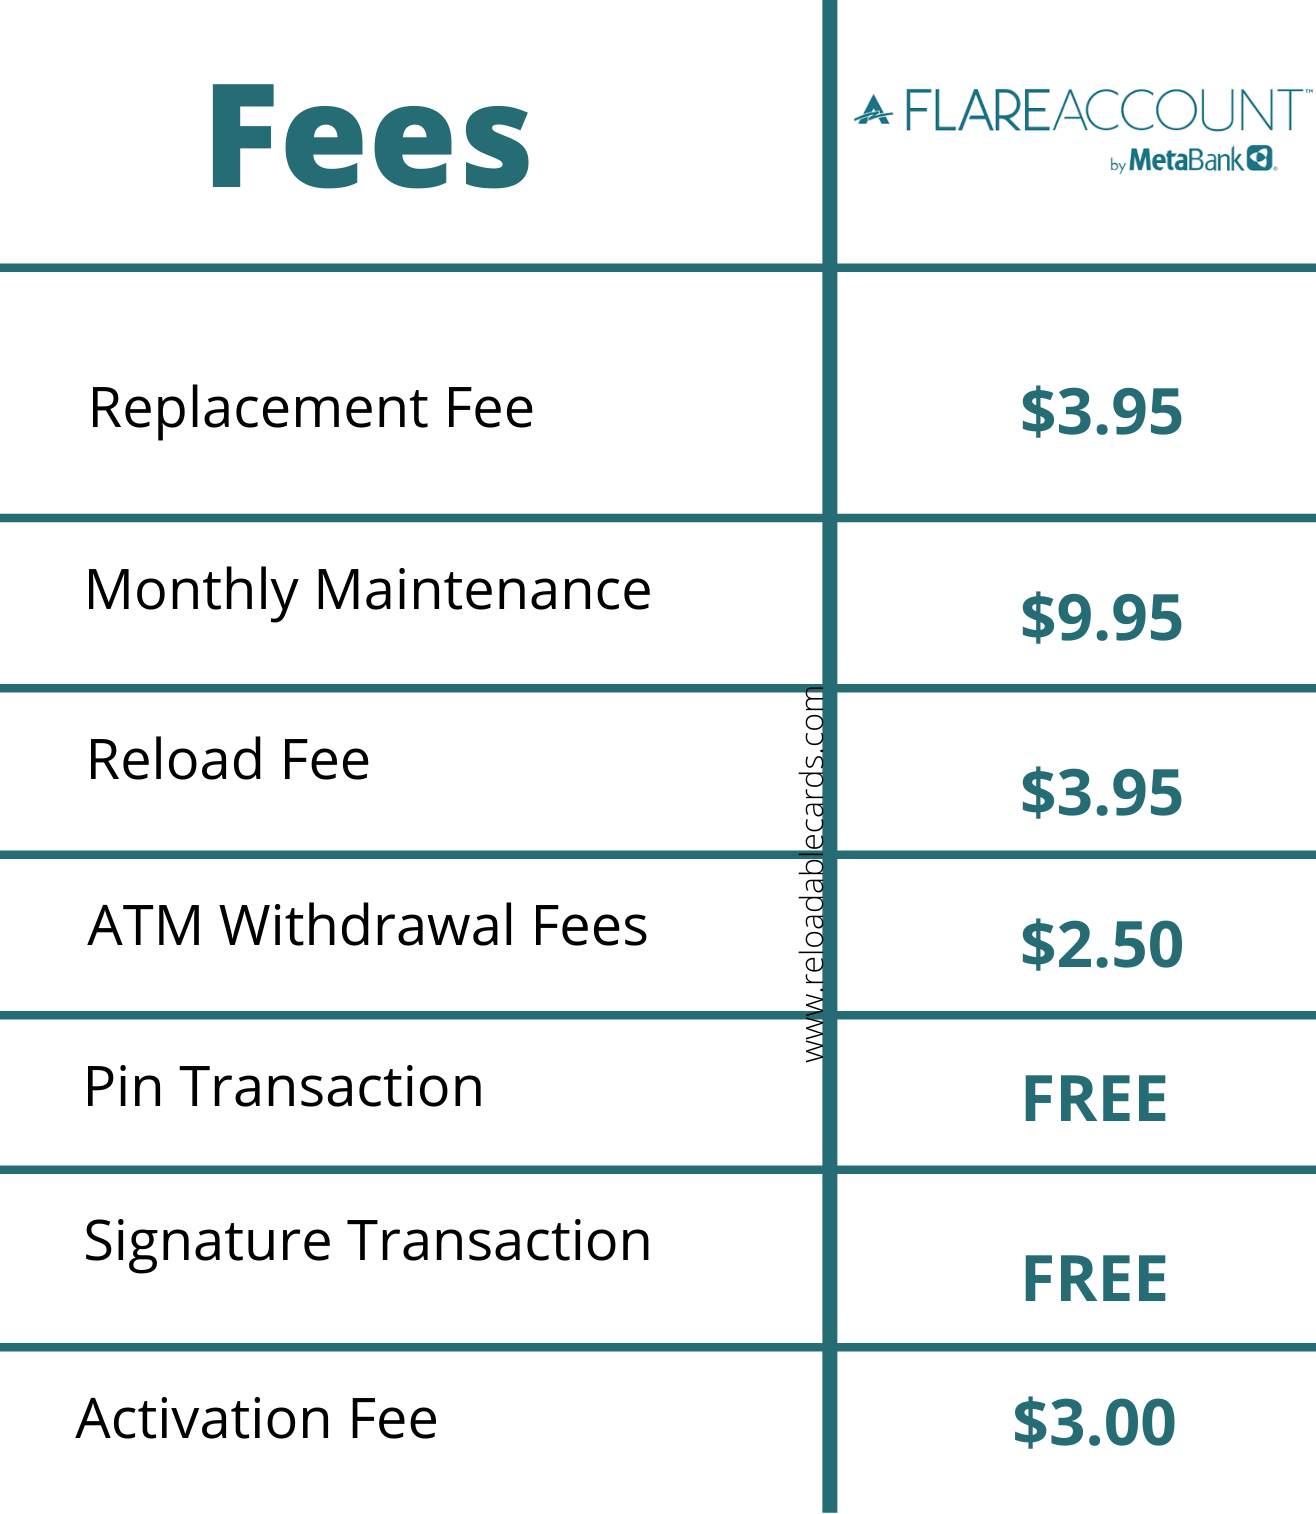 ace flare account fees